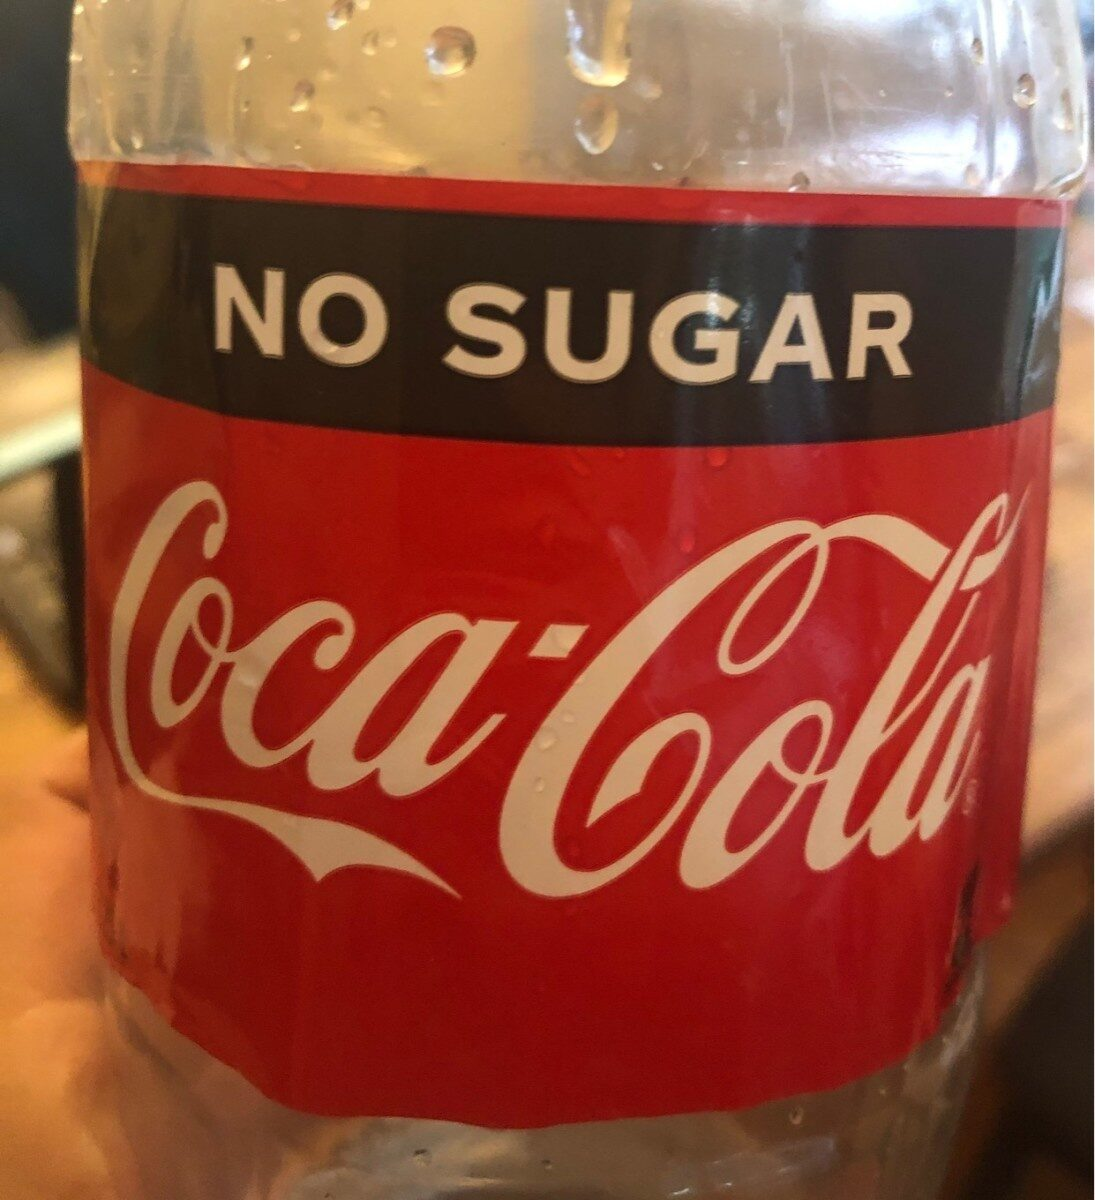 Coca cola no sugar - Product - en